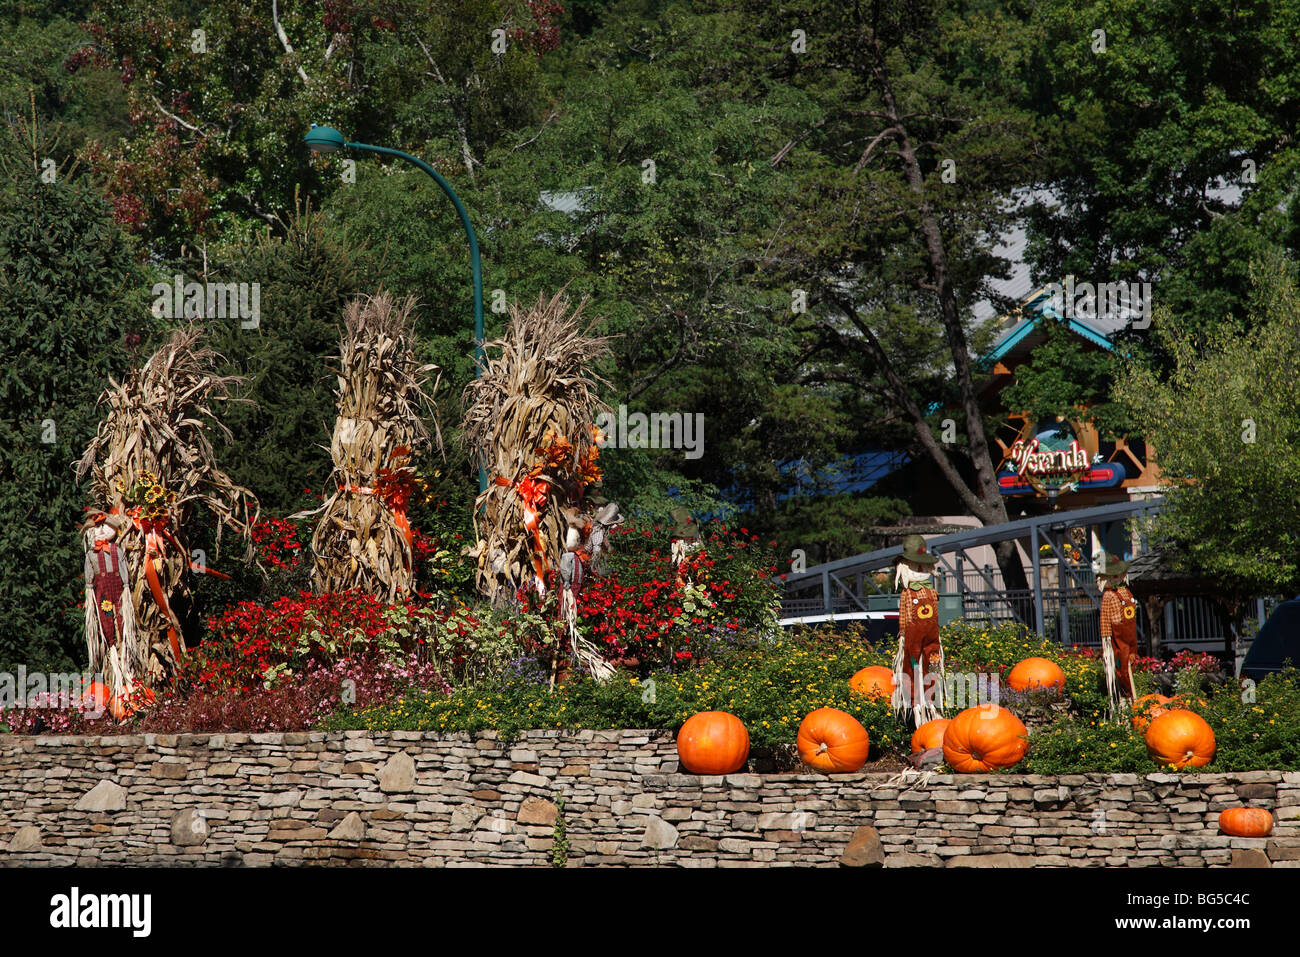 halloween decorations in gatlinburg tennessee usa on street outside outdoor